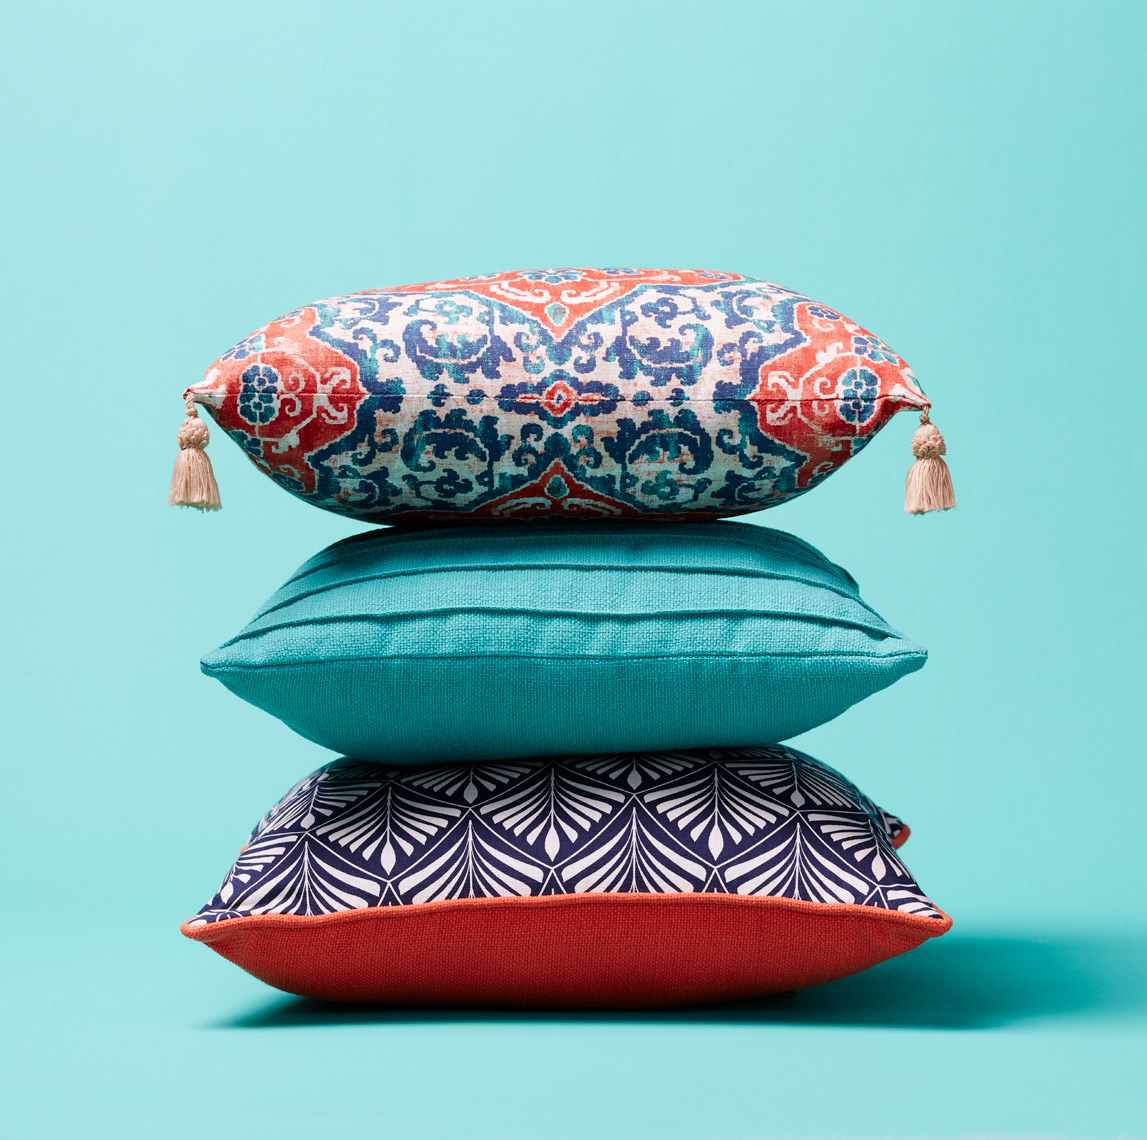 stack of blue and red patterned pillows with tassels and blue walls